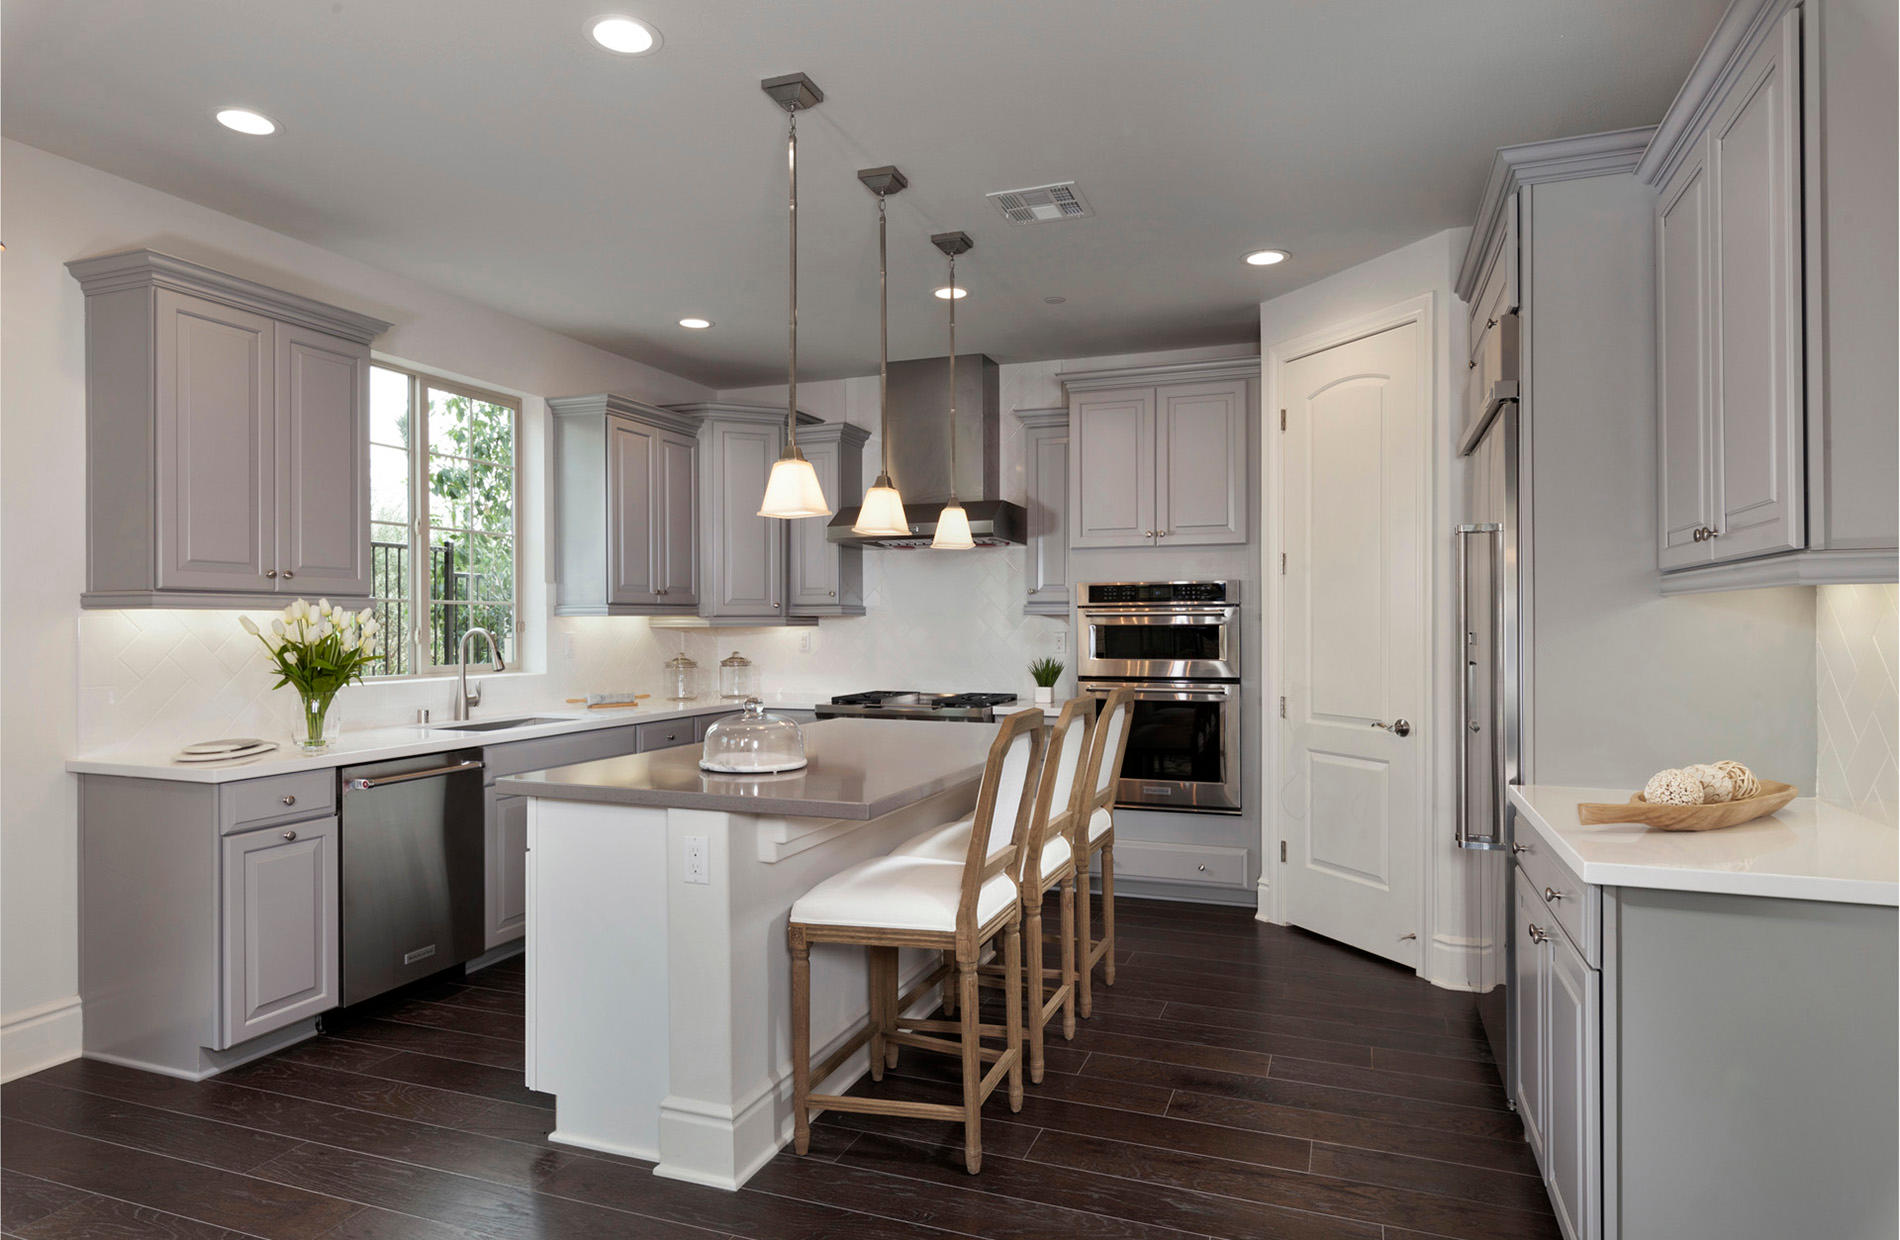 Canterbury Court by Pulte Homes image 6